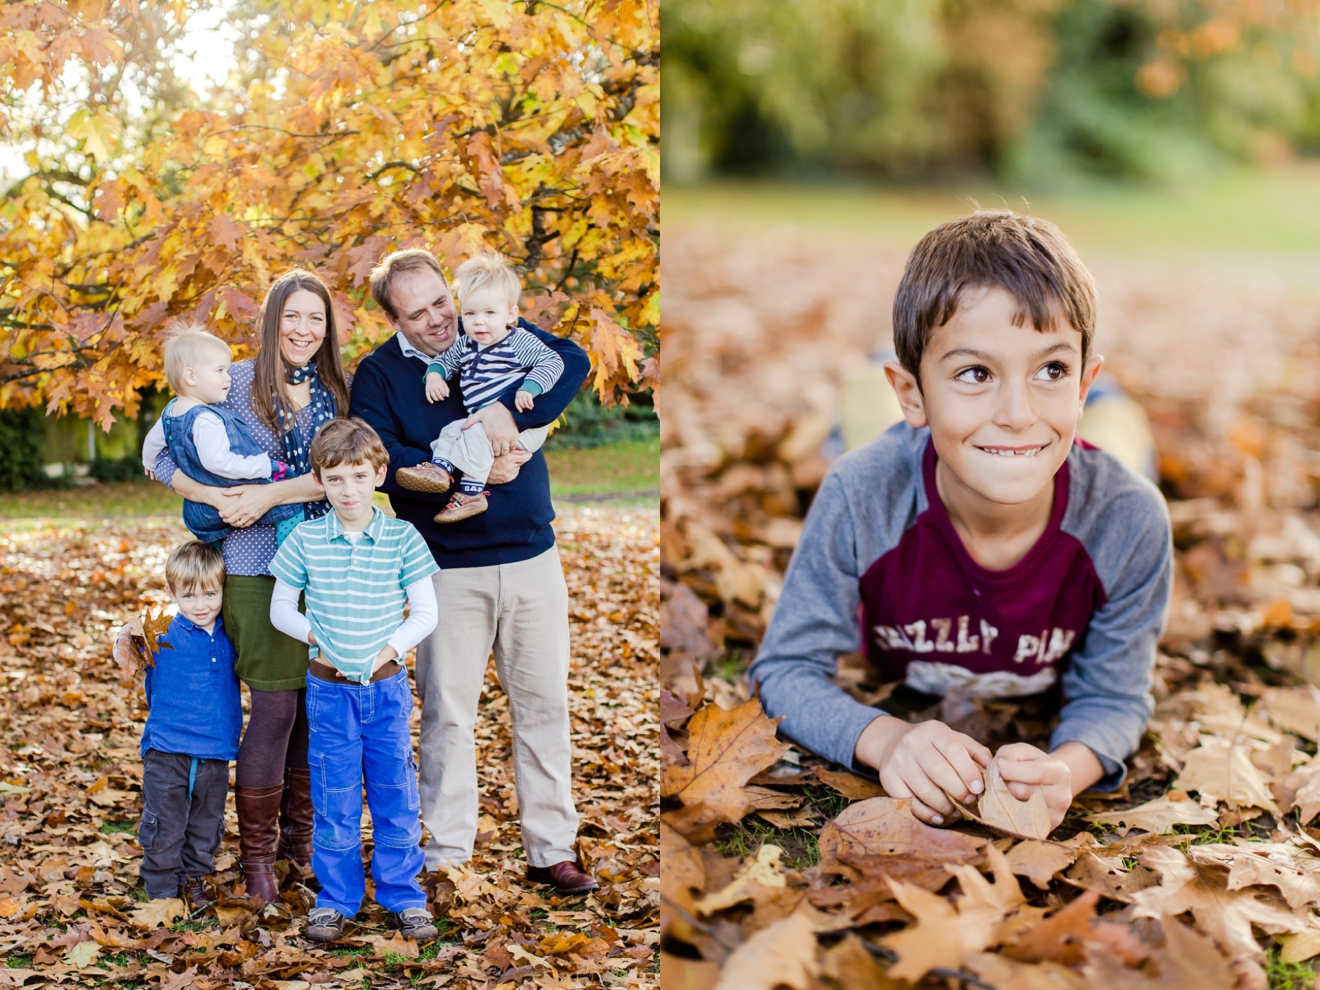 autumn-mini-portrait-sessions-surrey-weybridge-cobham-eddie-judd-family-photographer_0013